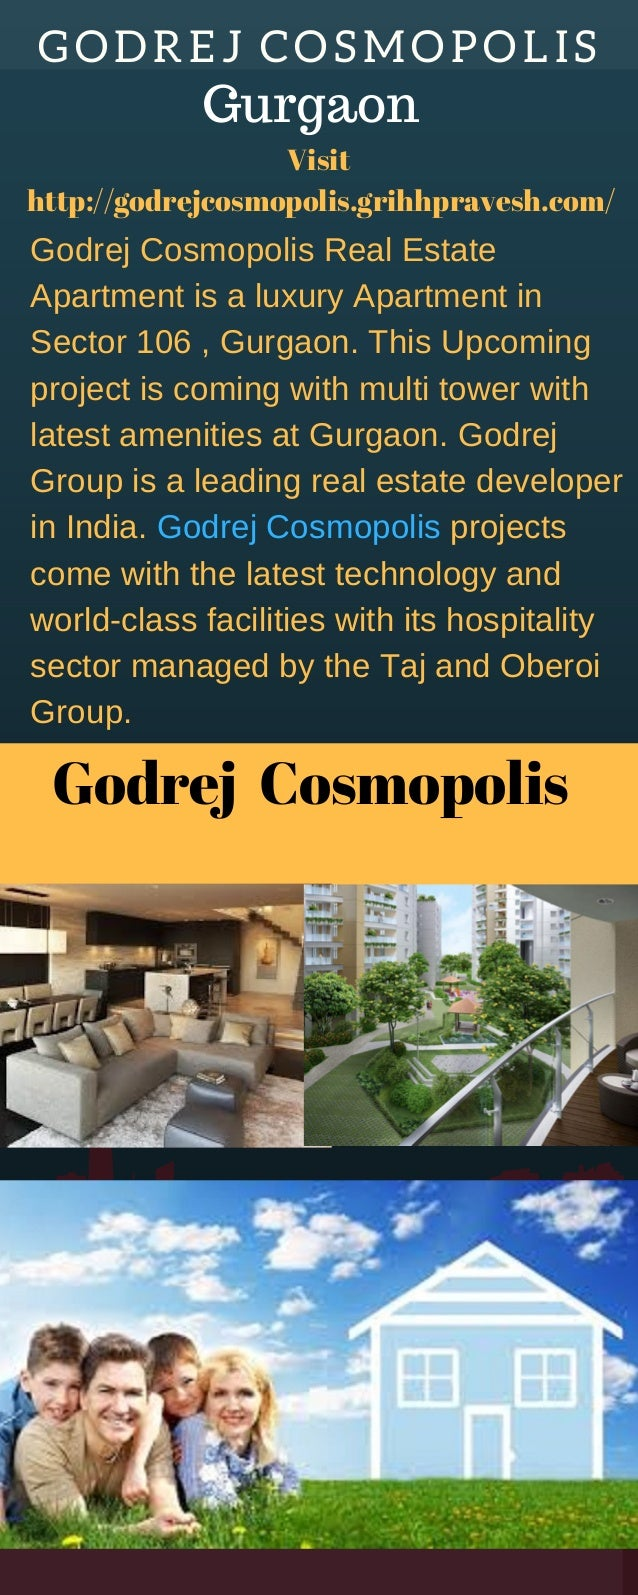 GODREJ� COSMOPOLIS Godrej� Cosmopolis Godrej Cosmopolis Real Estate Apartment is a luxury Apartment in Sector 106 , Gurgao...